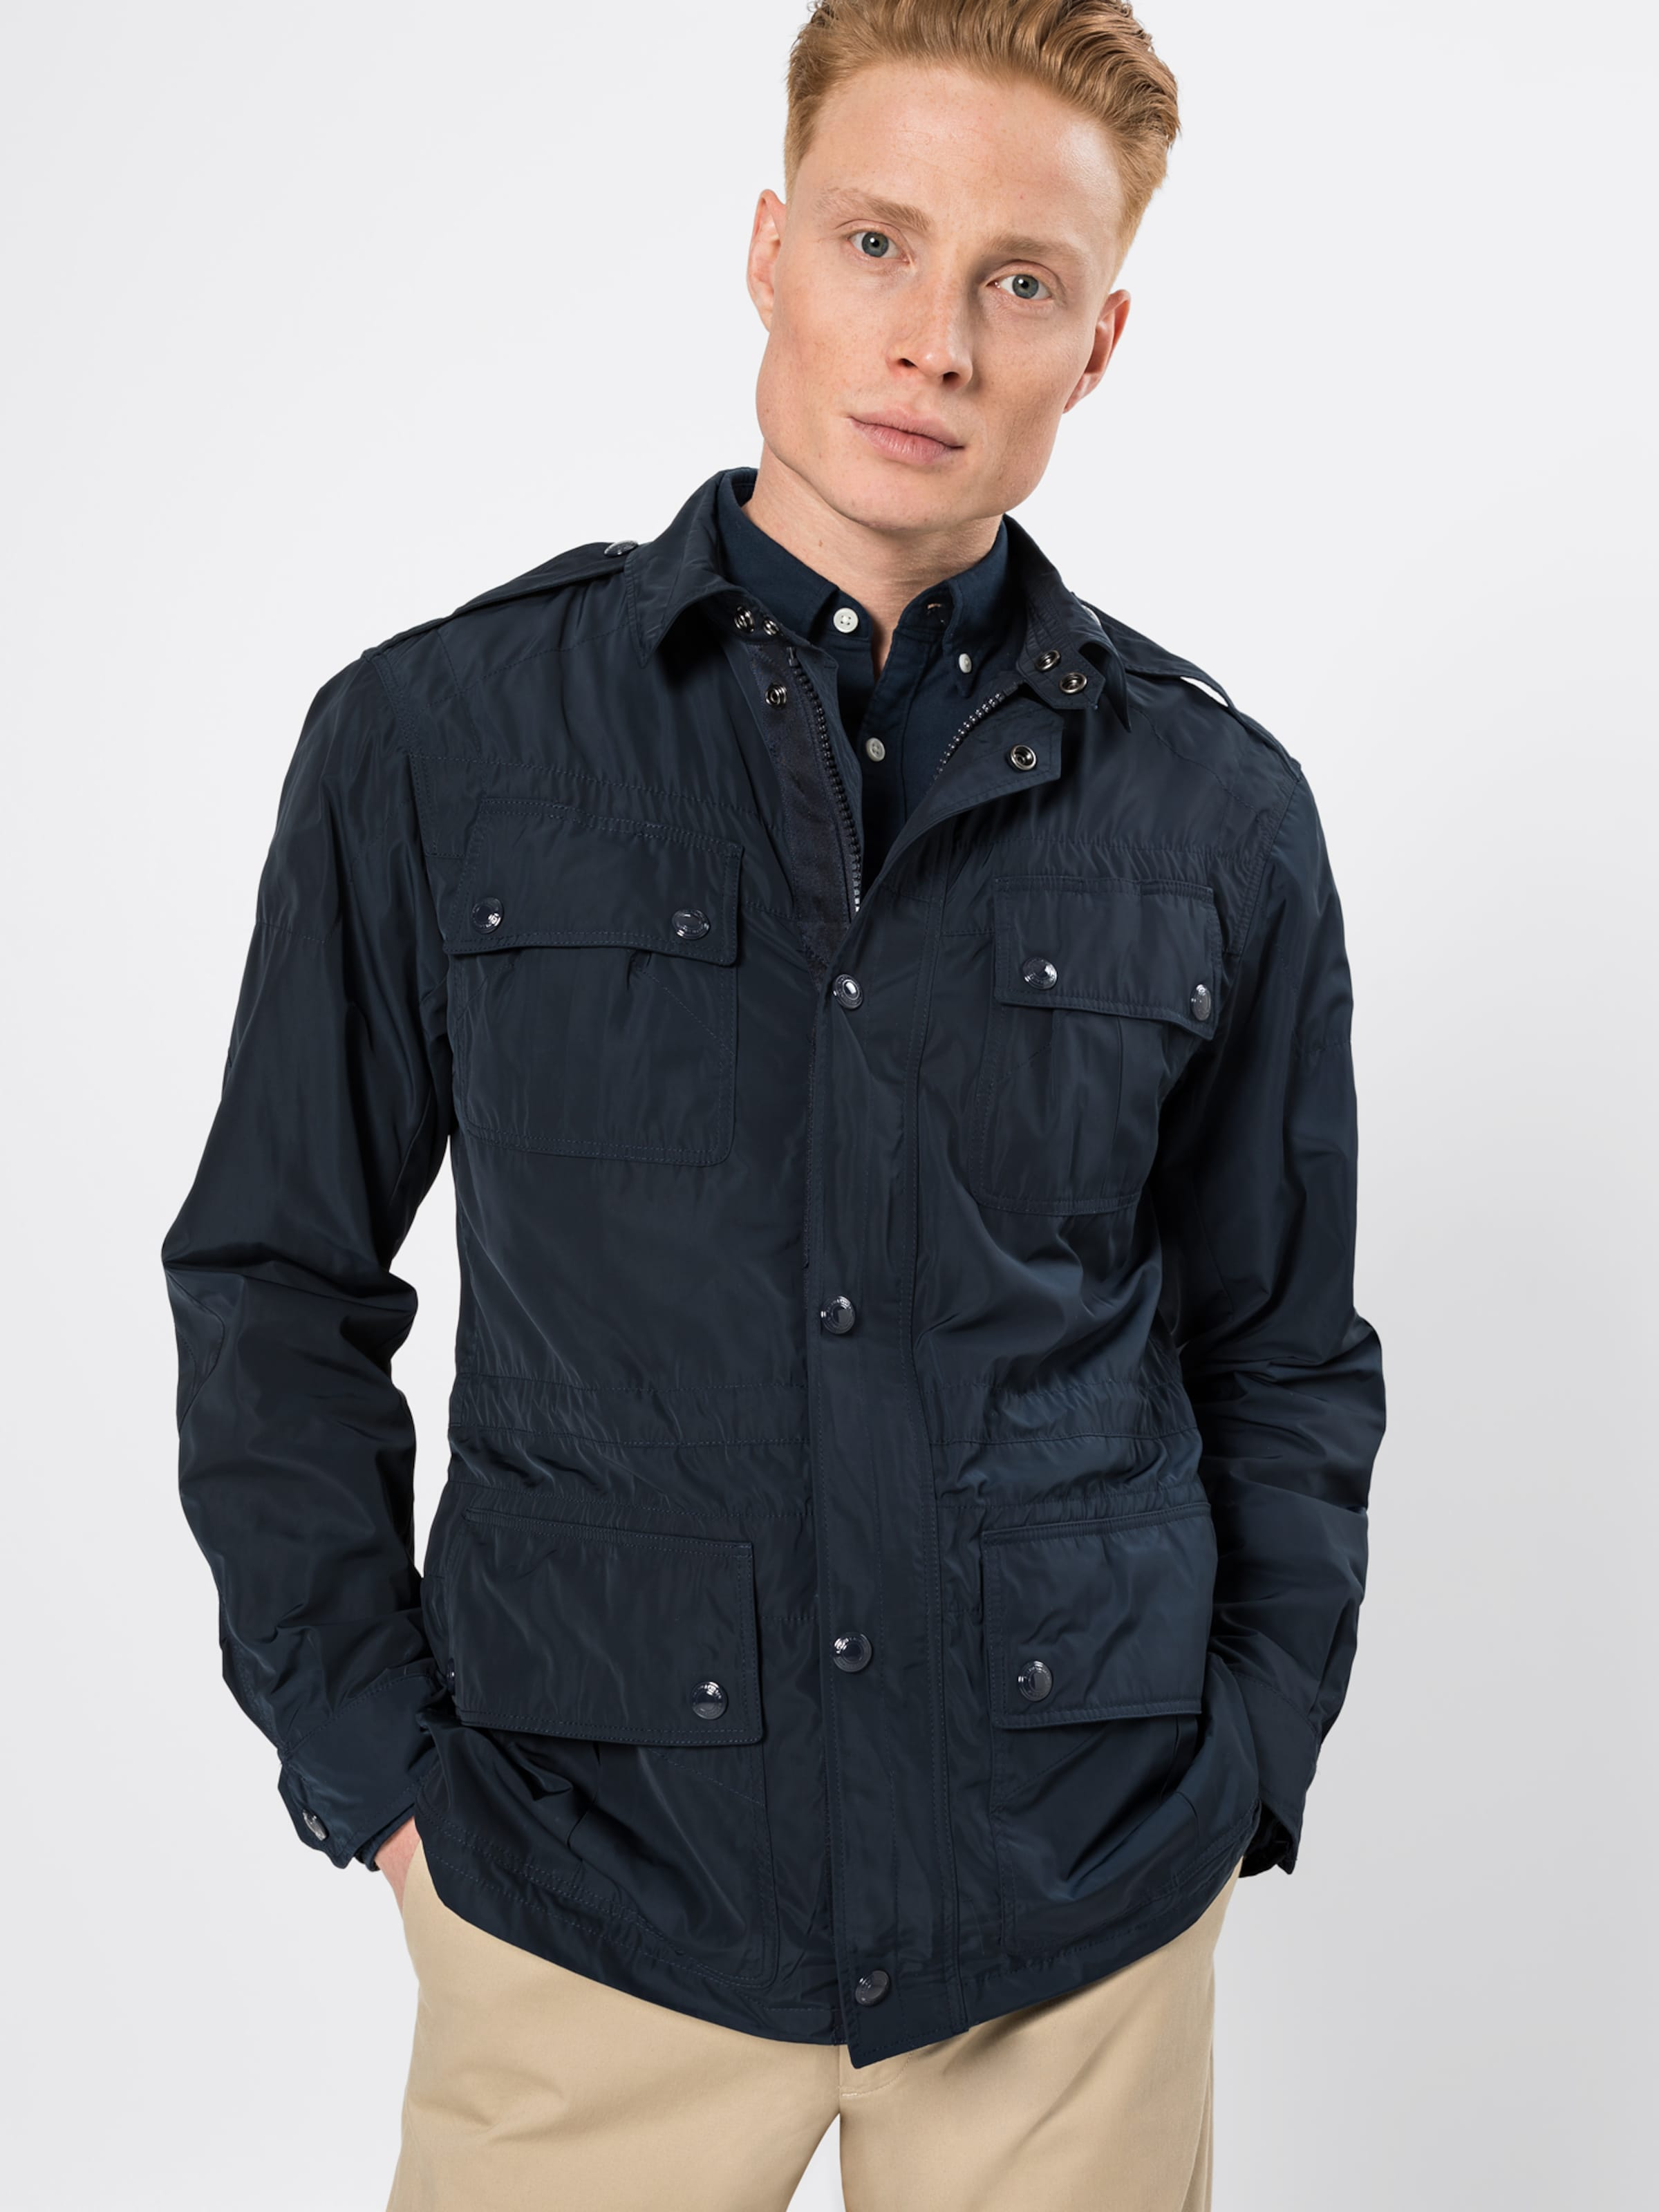 Lauren 'paratrooper' In Ralph Jacke Polo Navy yv0mNwnO8